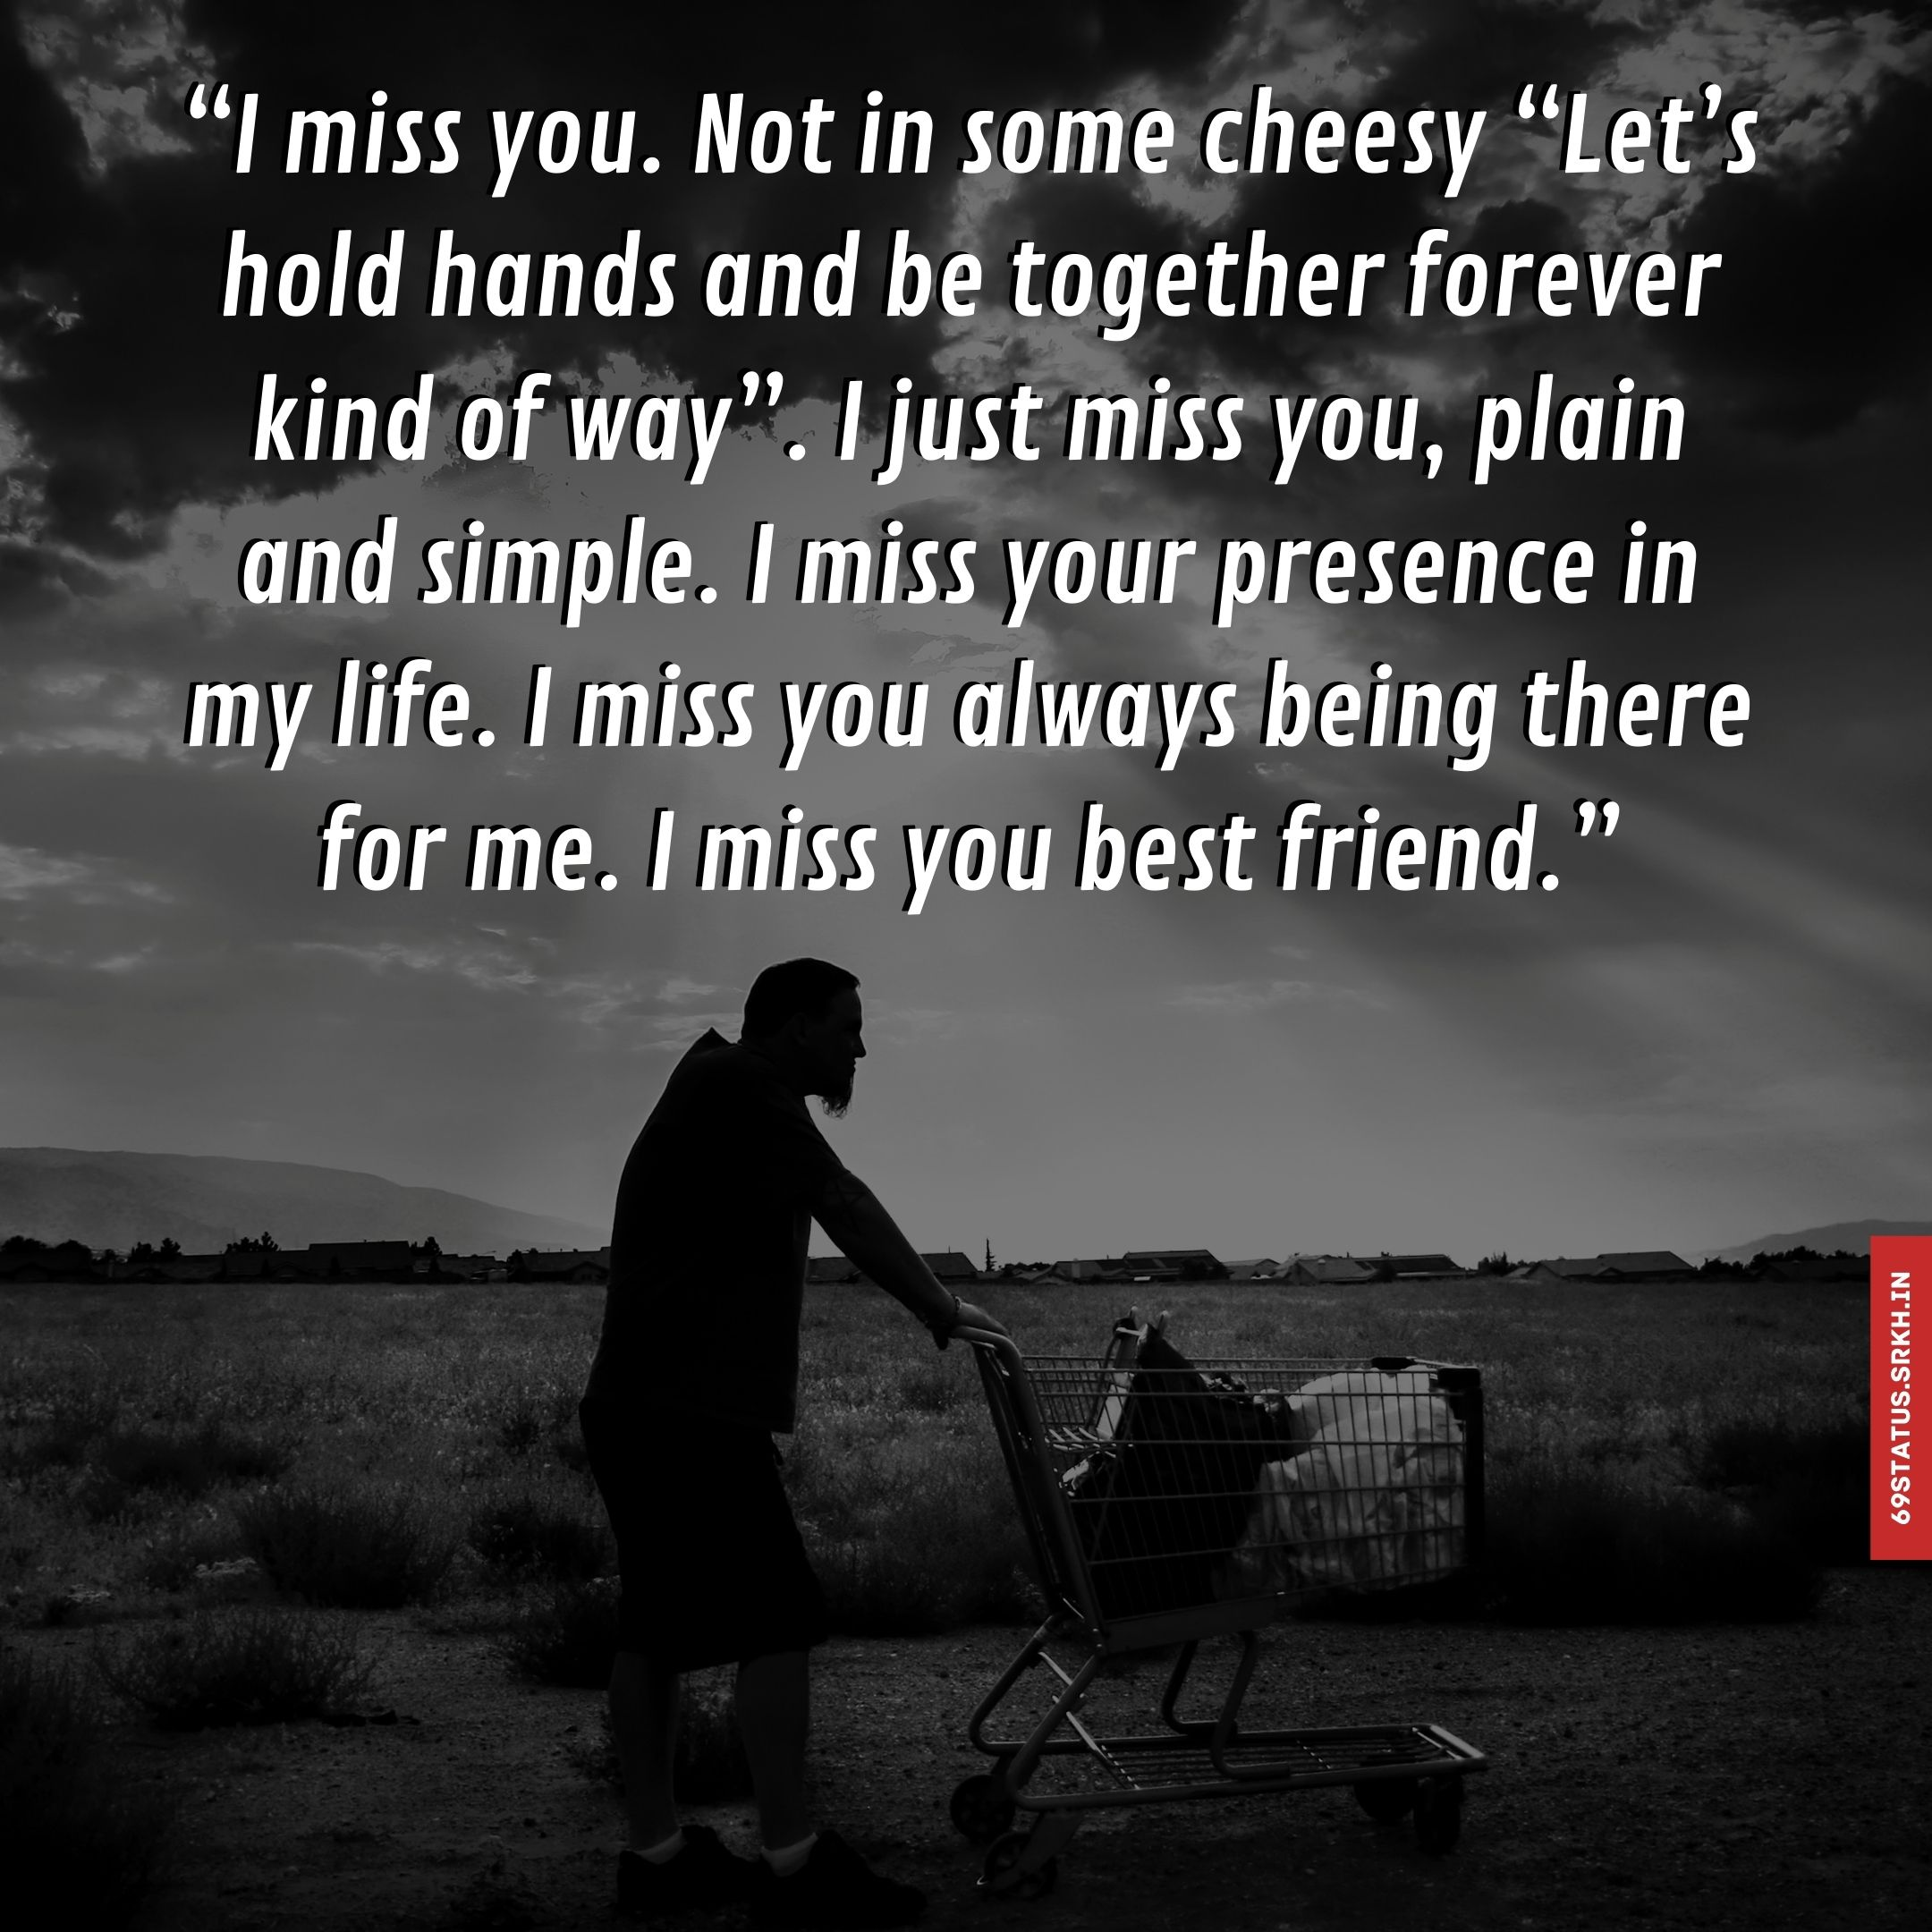 Miss you quotes images full HD free download.